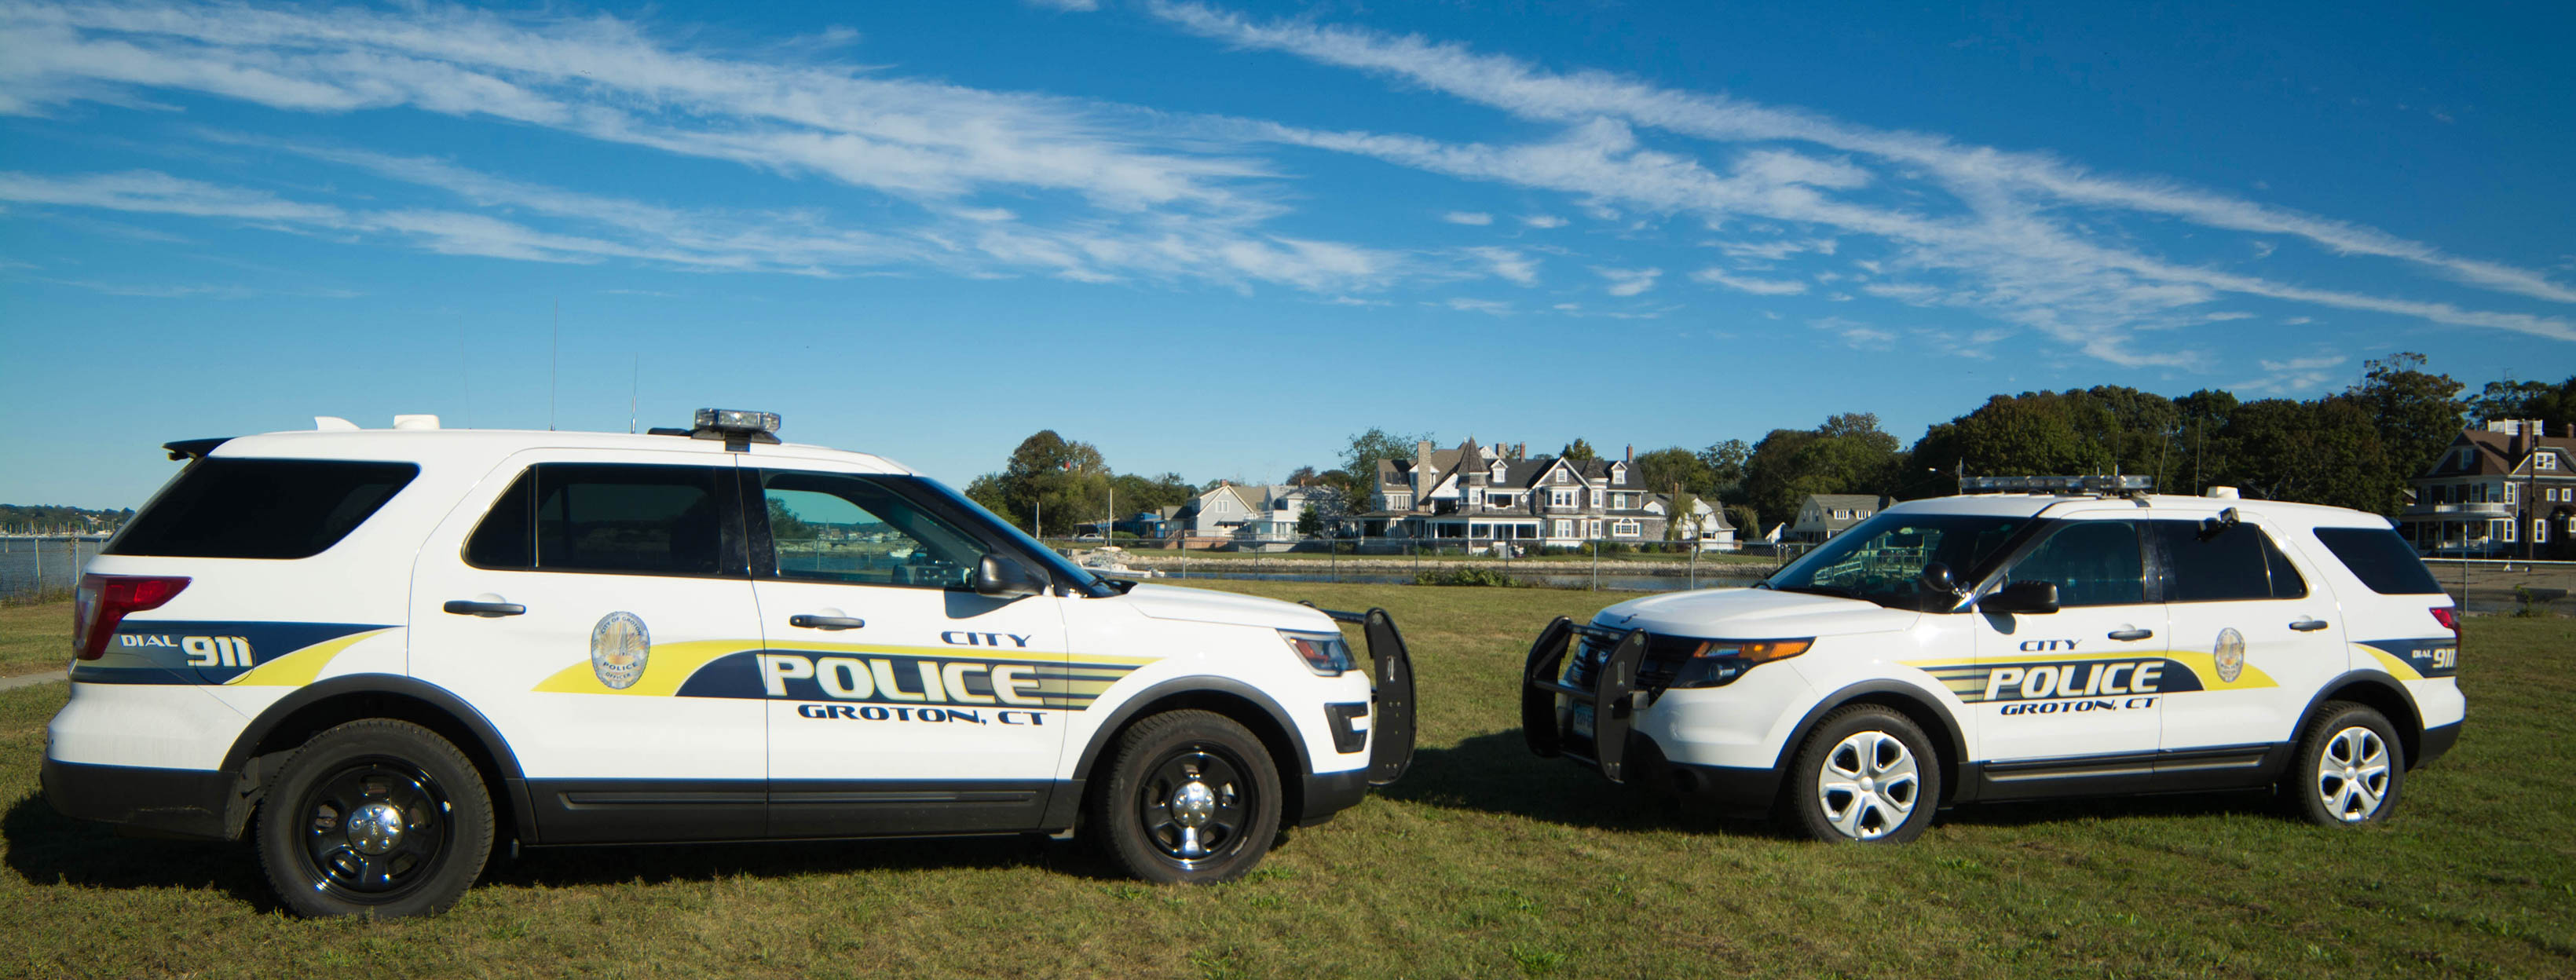 City Of Groton Ct Police Department Policeapp